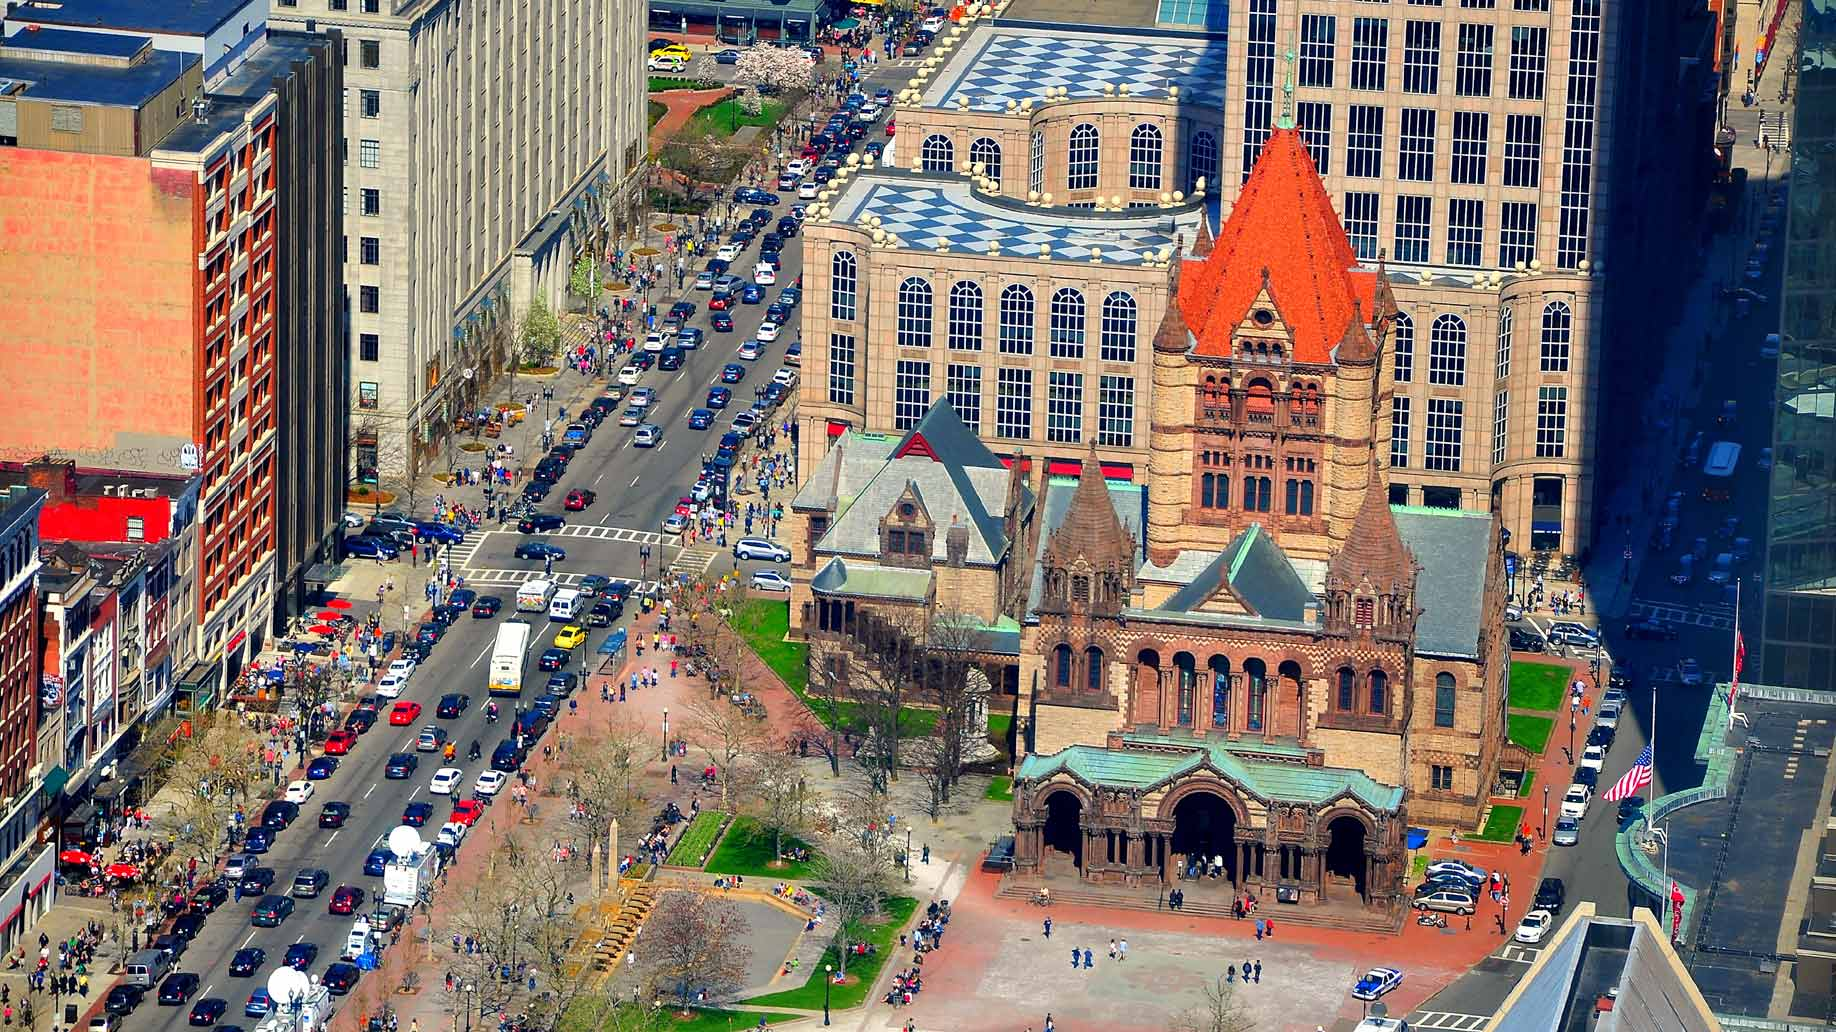 traffic in boston's copley square